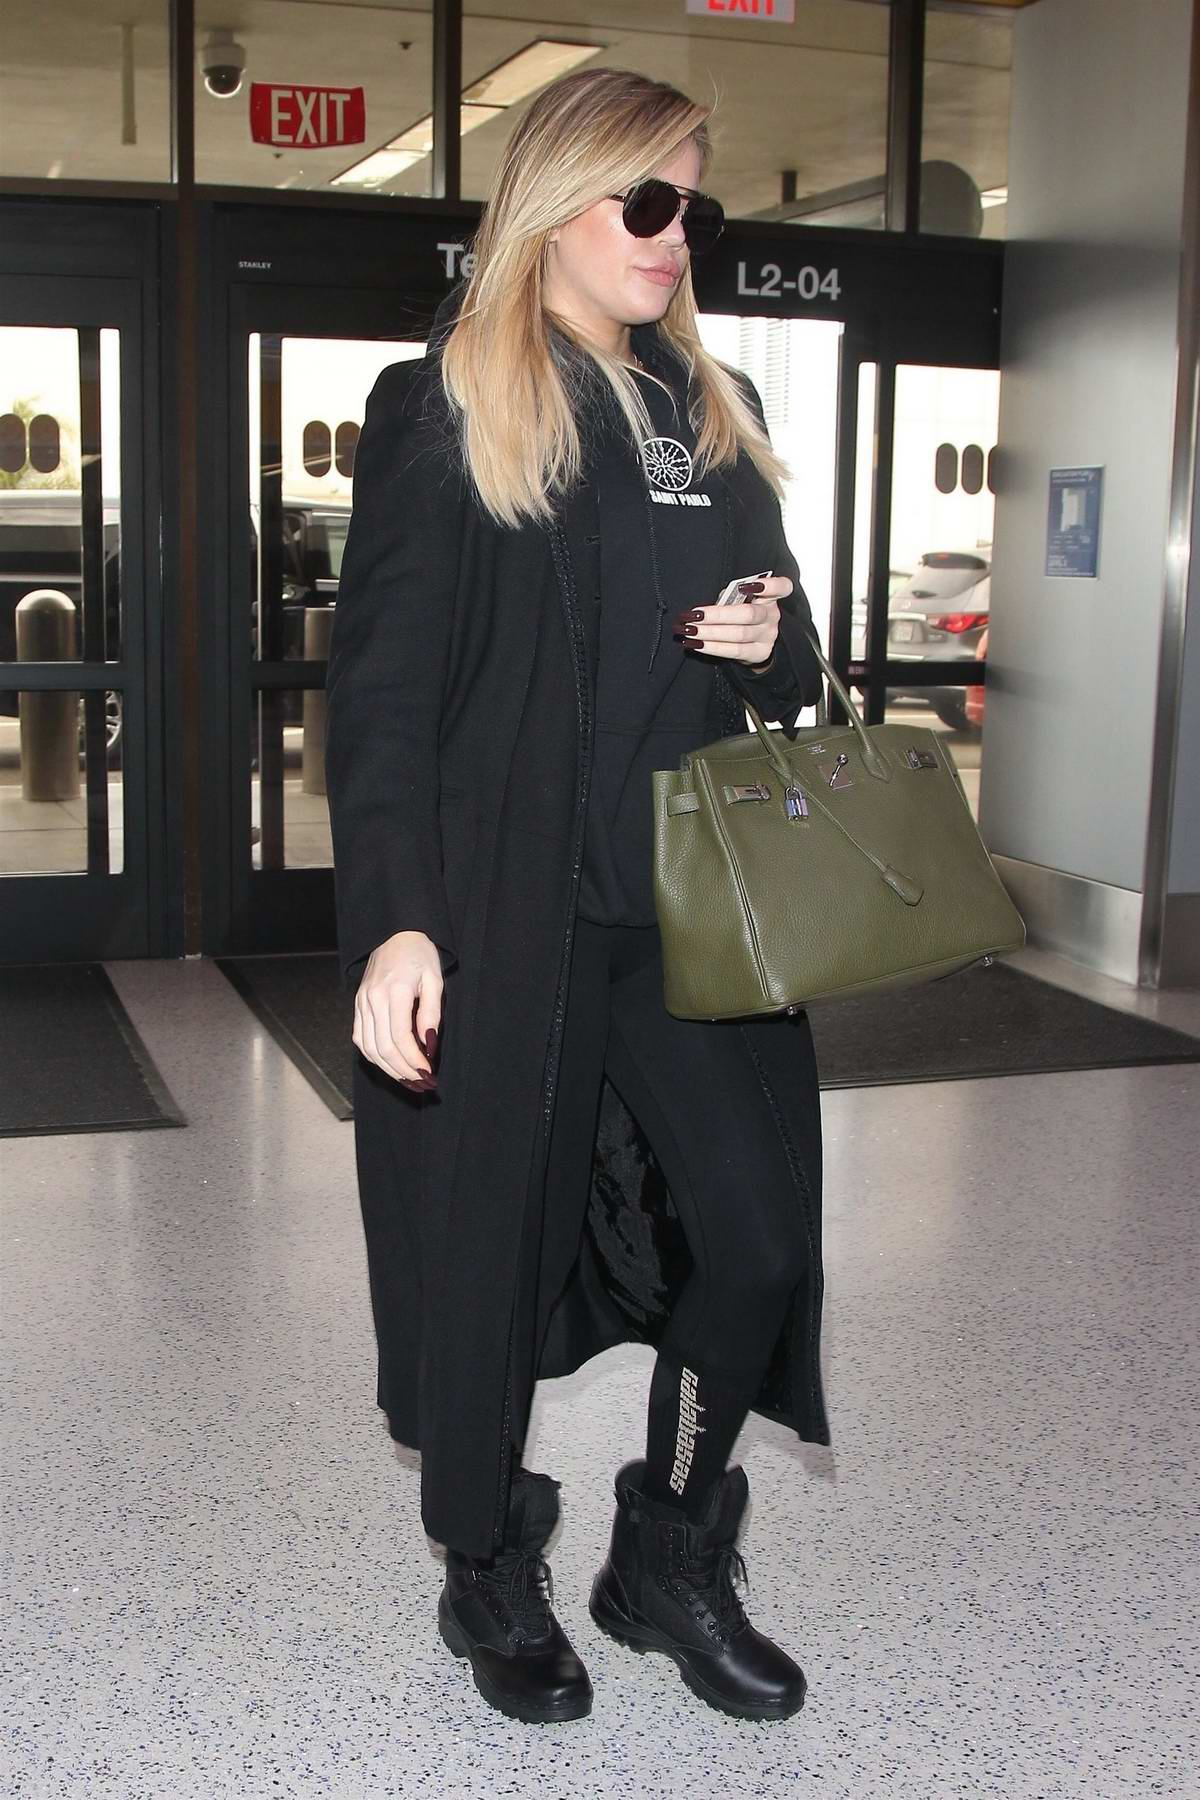 Khloe Kardashian spotted amidst pregnancy rumors while departing on a flight at LAX Airport, Los Angeles